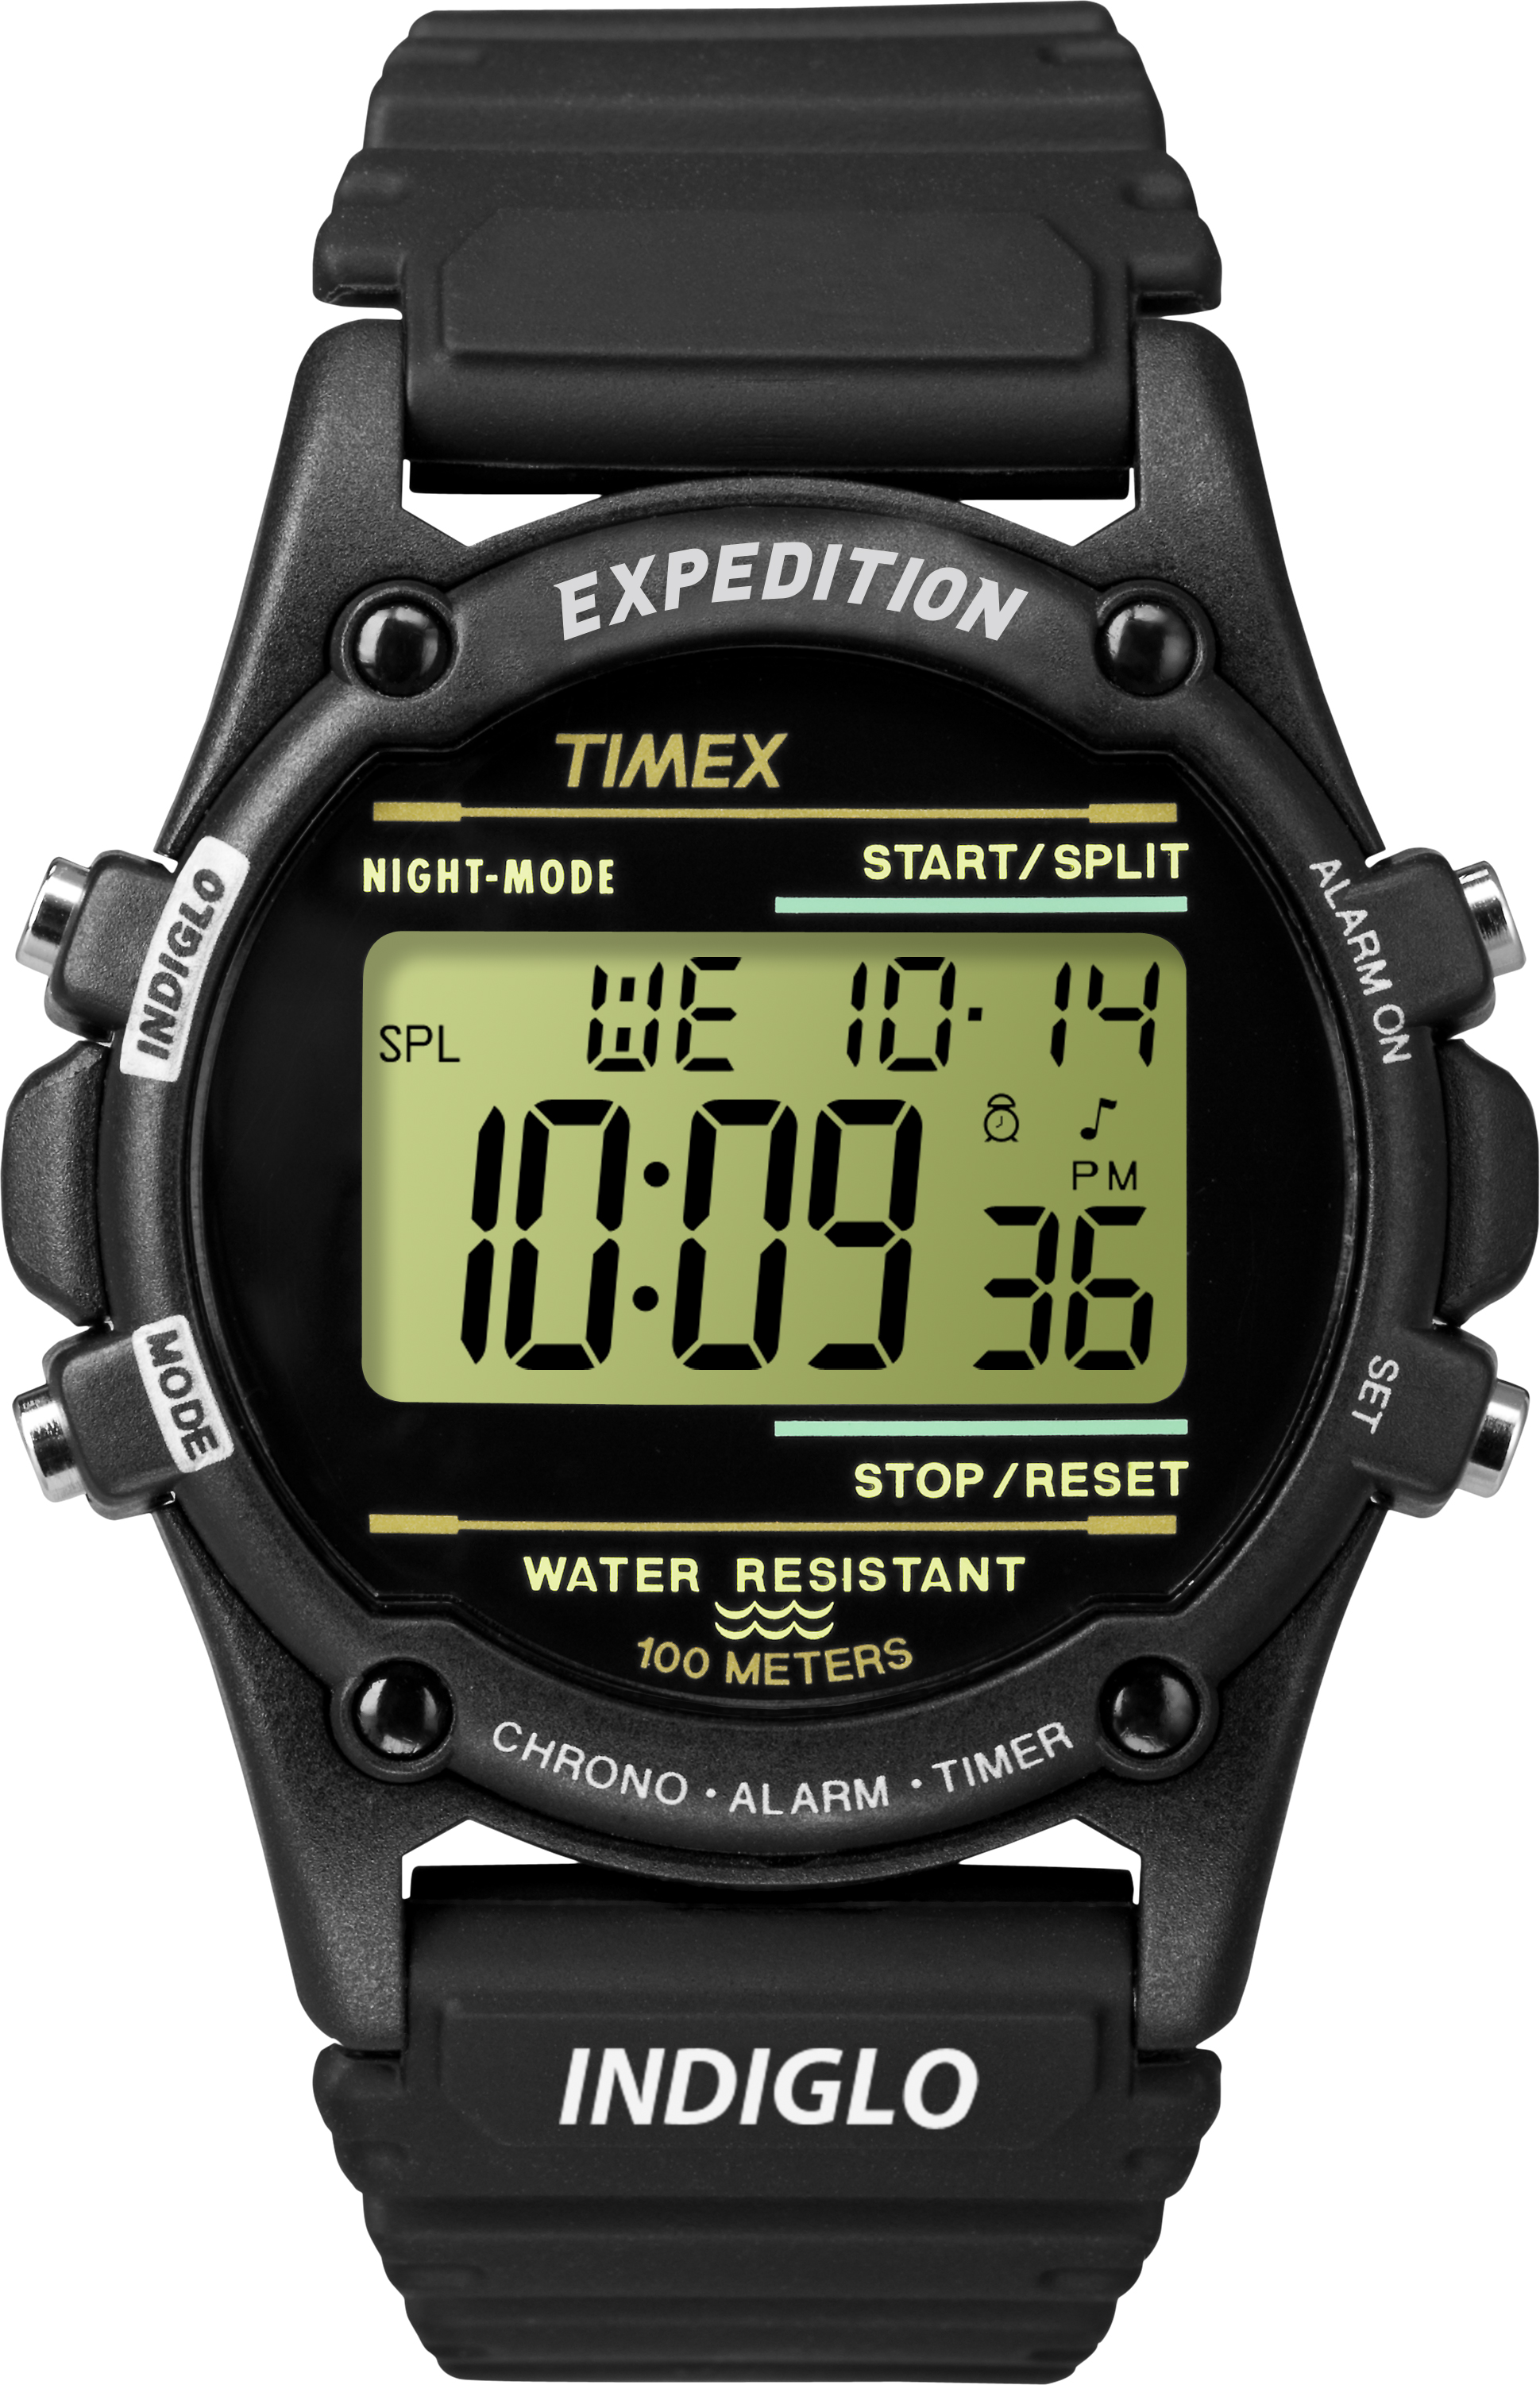 Expedition watch for men